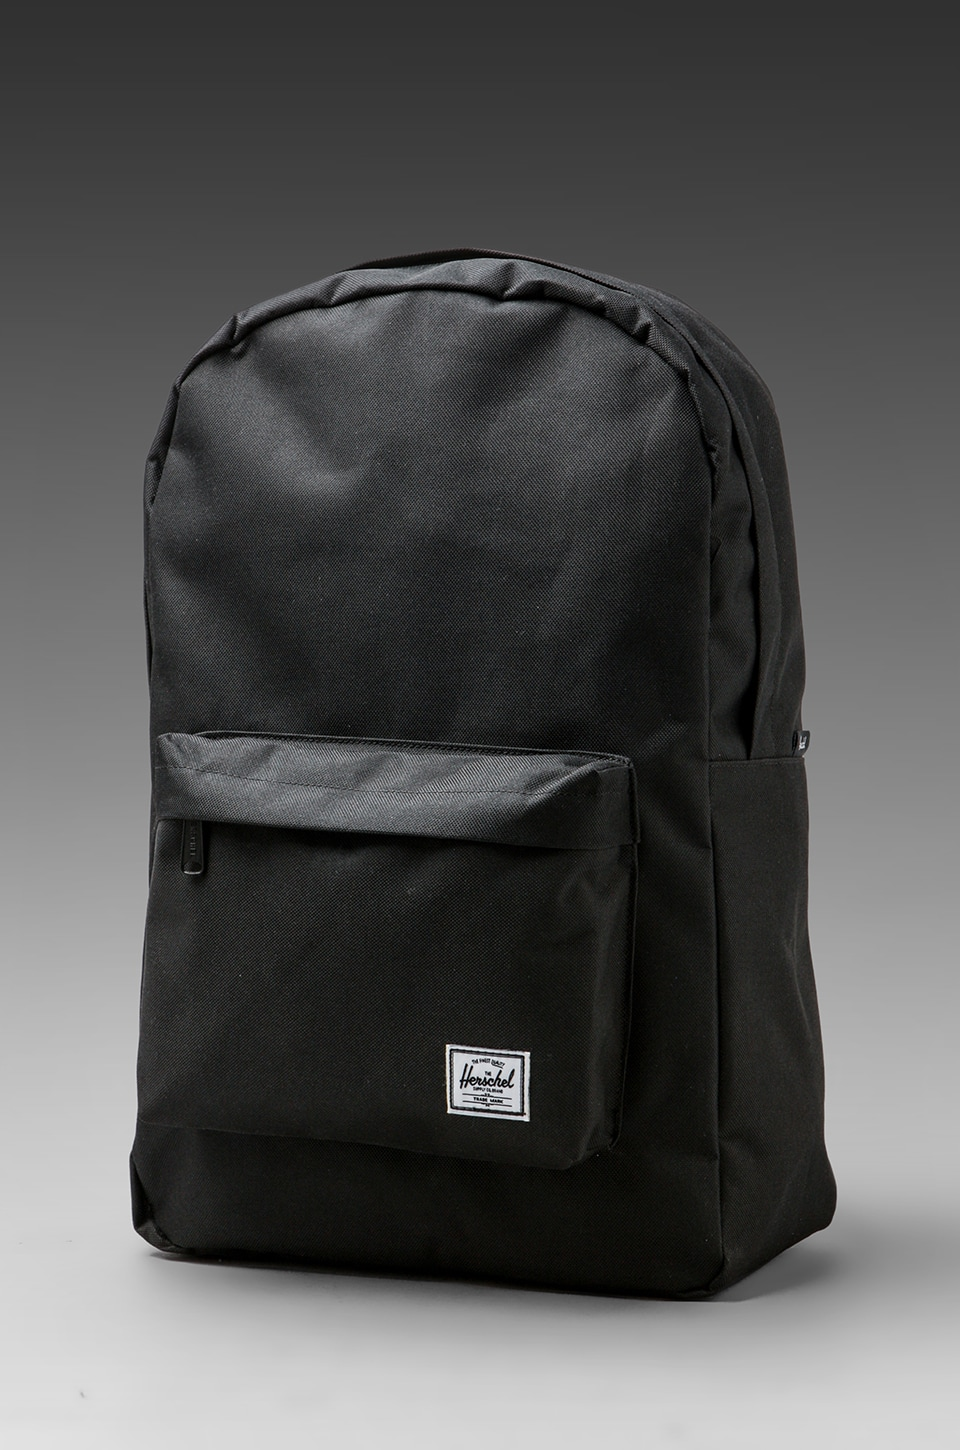 Herschel Supply Co. Classic Backpack in Black